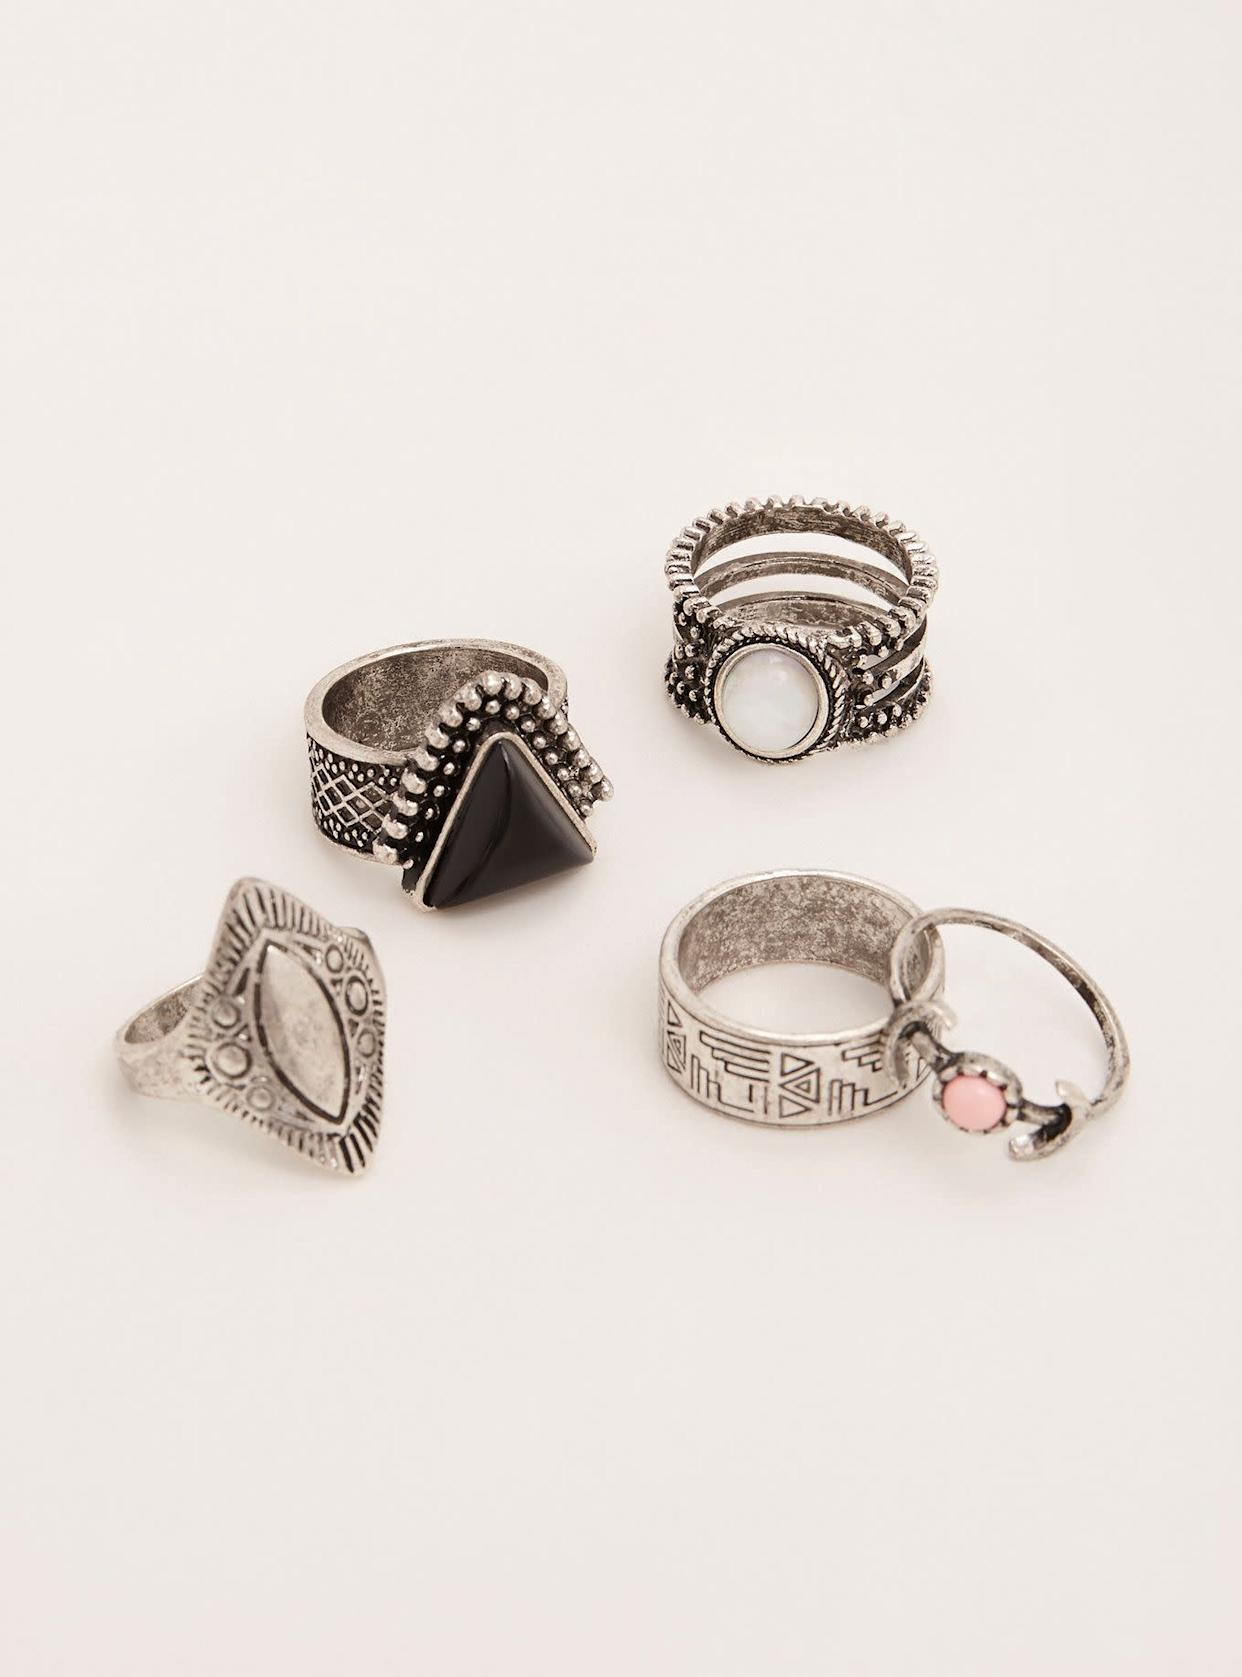 "Get the <a href=""http://www.torrid.com/product/etched-boho-ring-set/10912728.html?cgid=accessories-jewelry"" rel=""nofollow noopener"" target=""_blank"" data-ylk=""slk:Torrid etched boho ring set"" class=""link rapid-noclick-resp"">Torrid etched boho ring set</a>, $14.90"